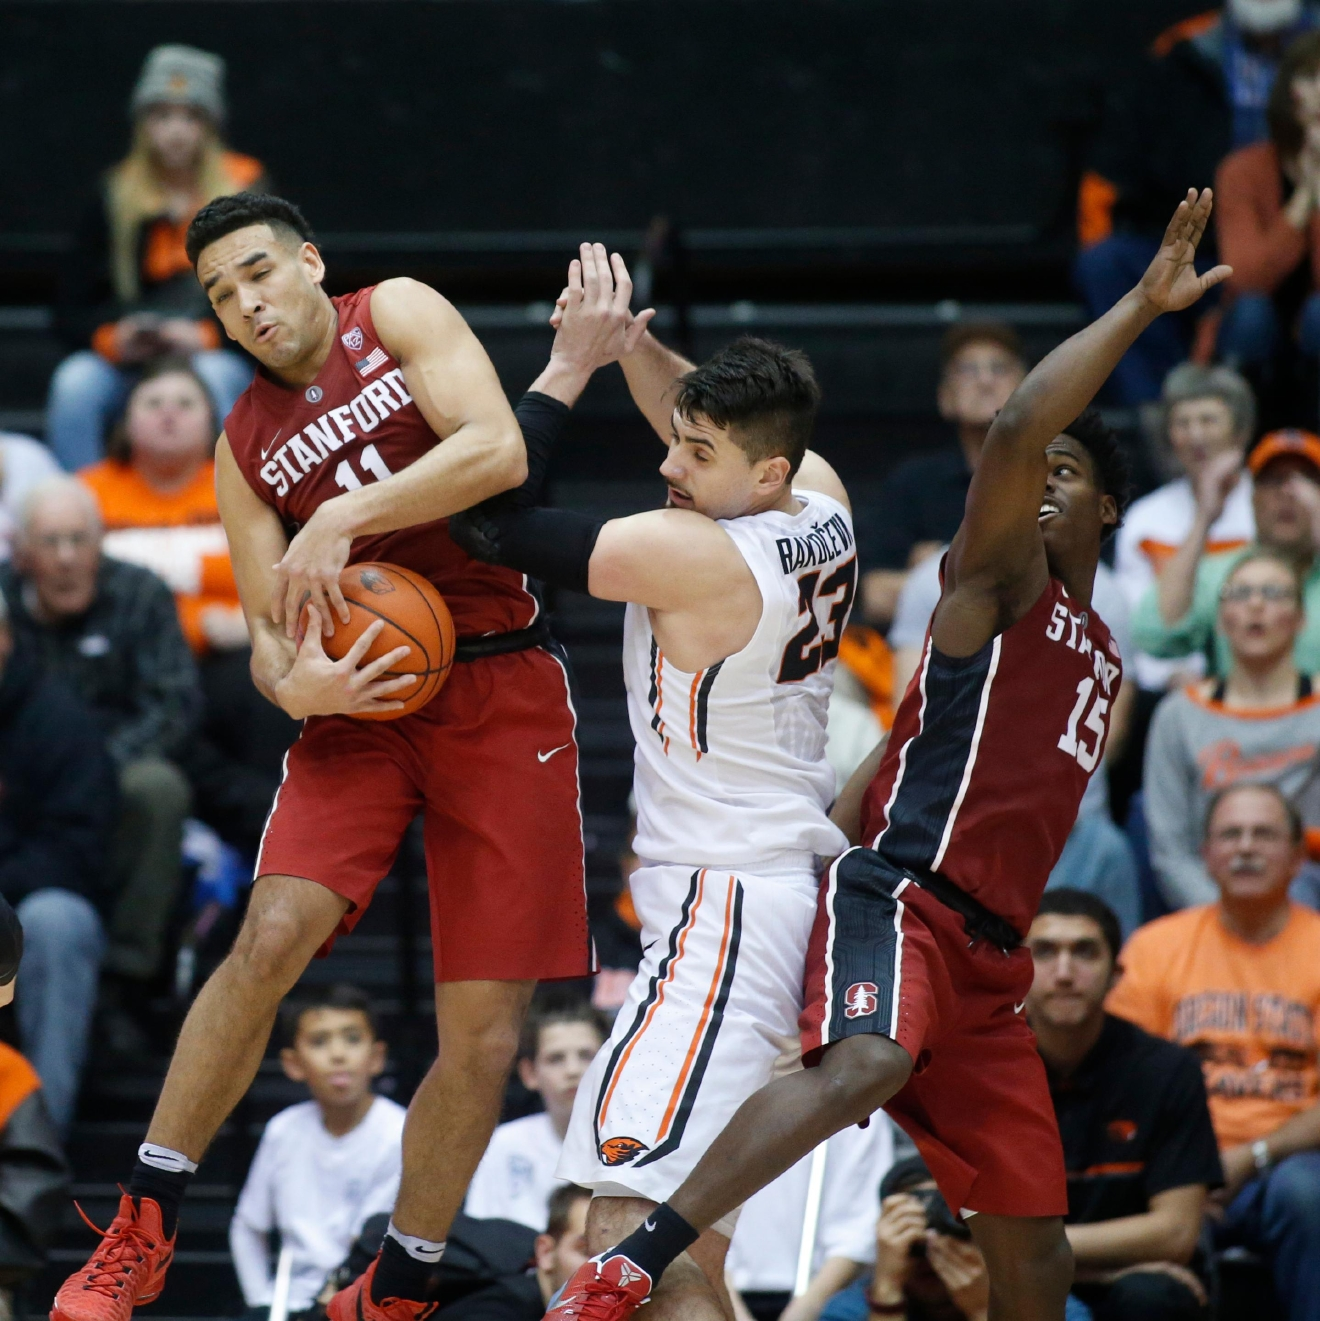 Stanford's Dorian Pickens, left, grabs a rebound away from Oregon State's Gligorije Rakocevic, center, and Stanford's Marcus Allen, right, during the second half of an NCAA college basketball game in Corvallis, Ore., Thursday, Jan. 19, 2017. Stanford won 62-46. (AP Photo/Timothy J. Gonzalez)